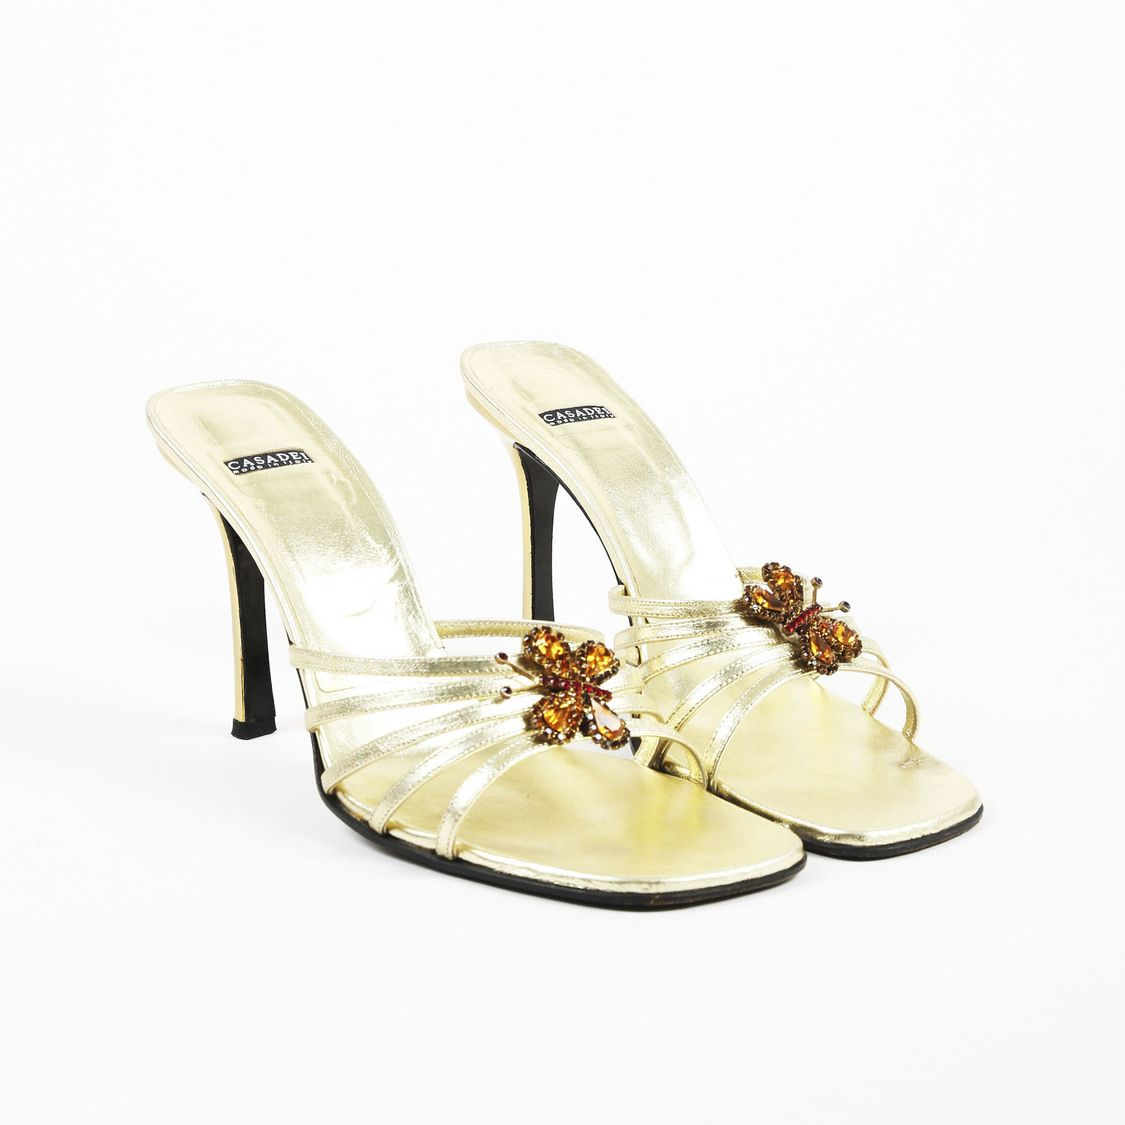 f6937fbf19 Casadei Metallic Gold Leather Butterfly Embellished High Heel Mule Sandals